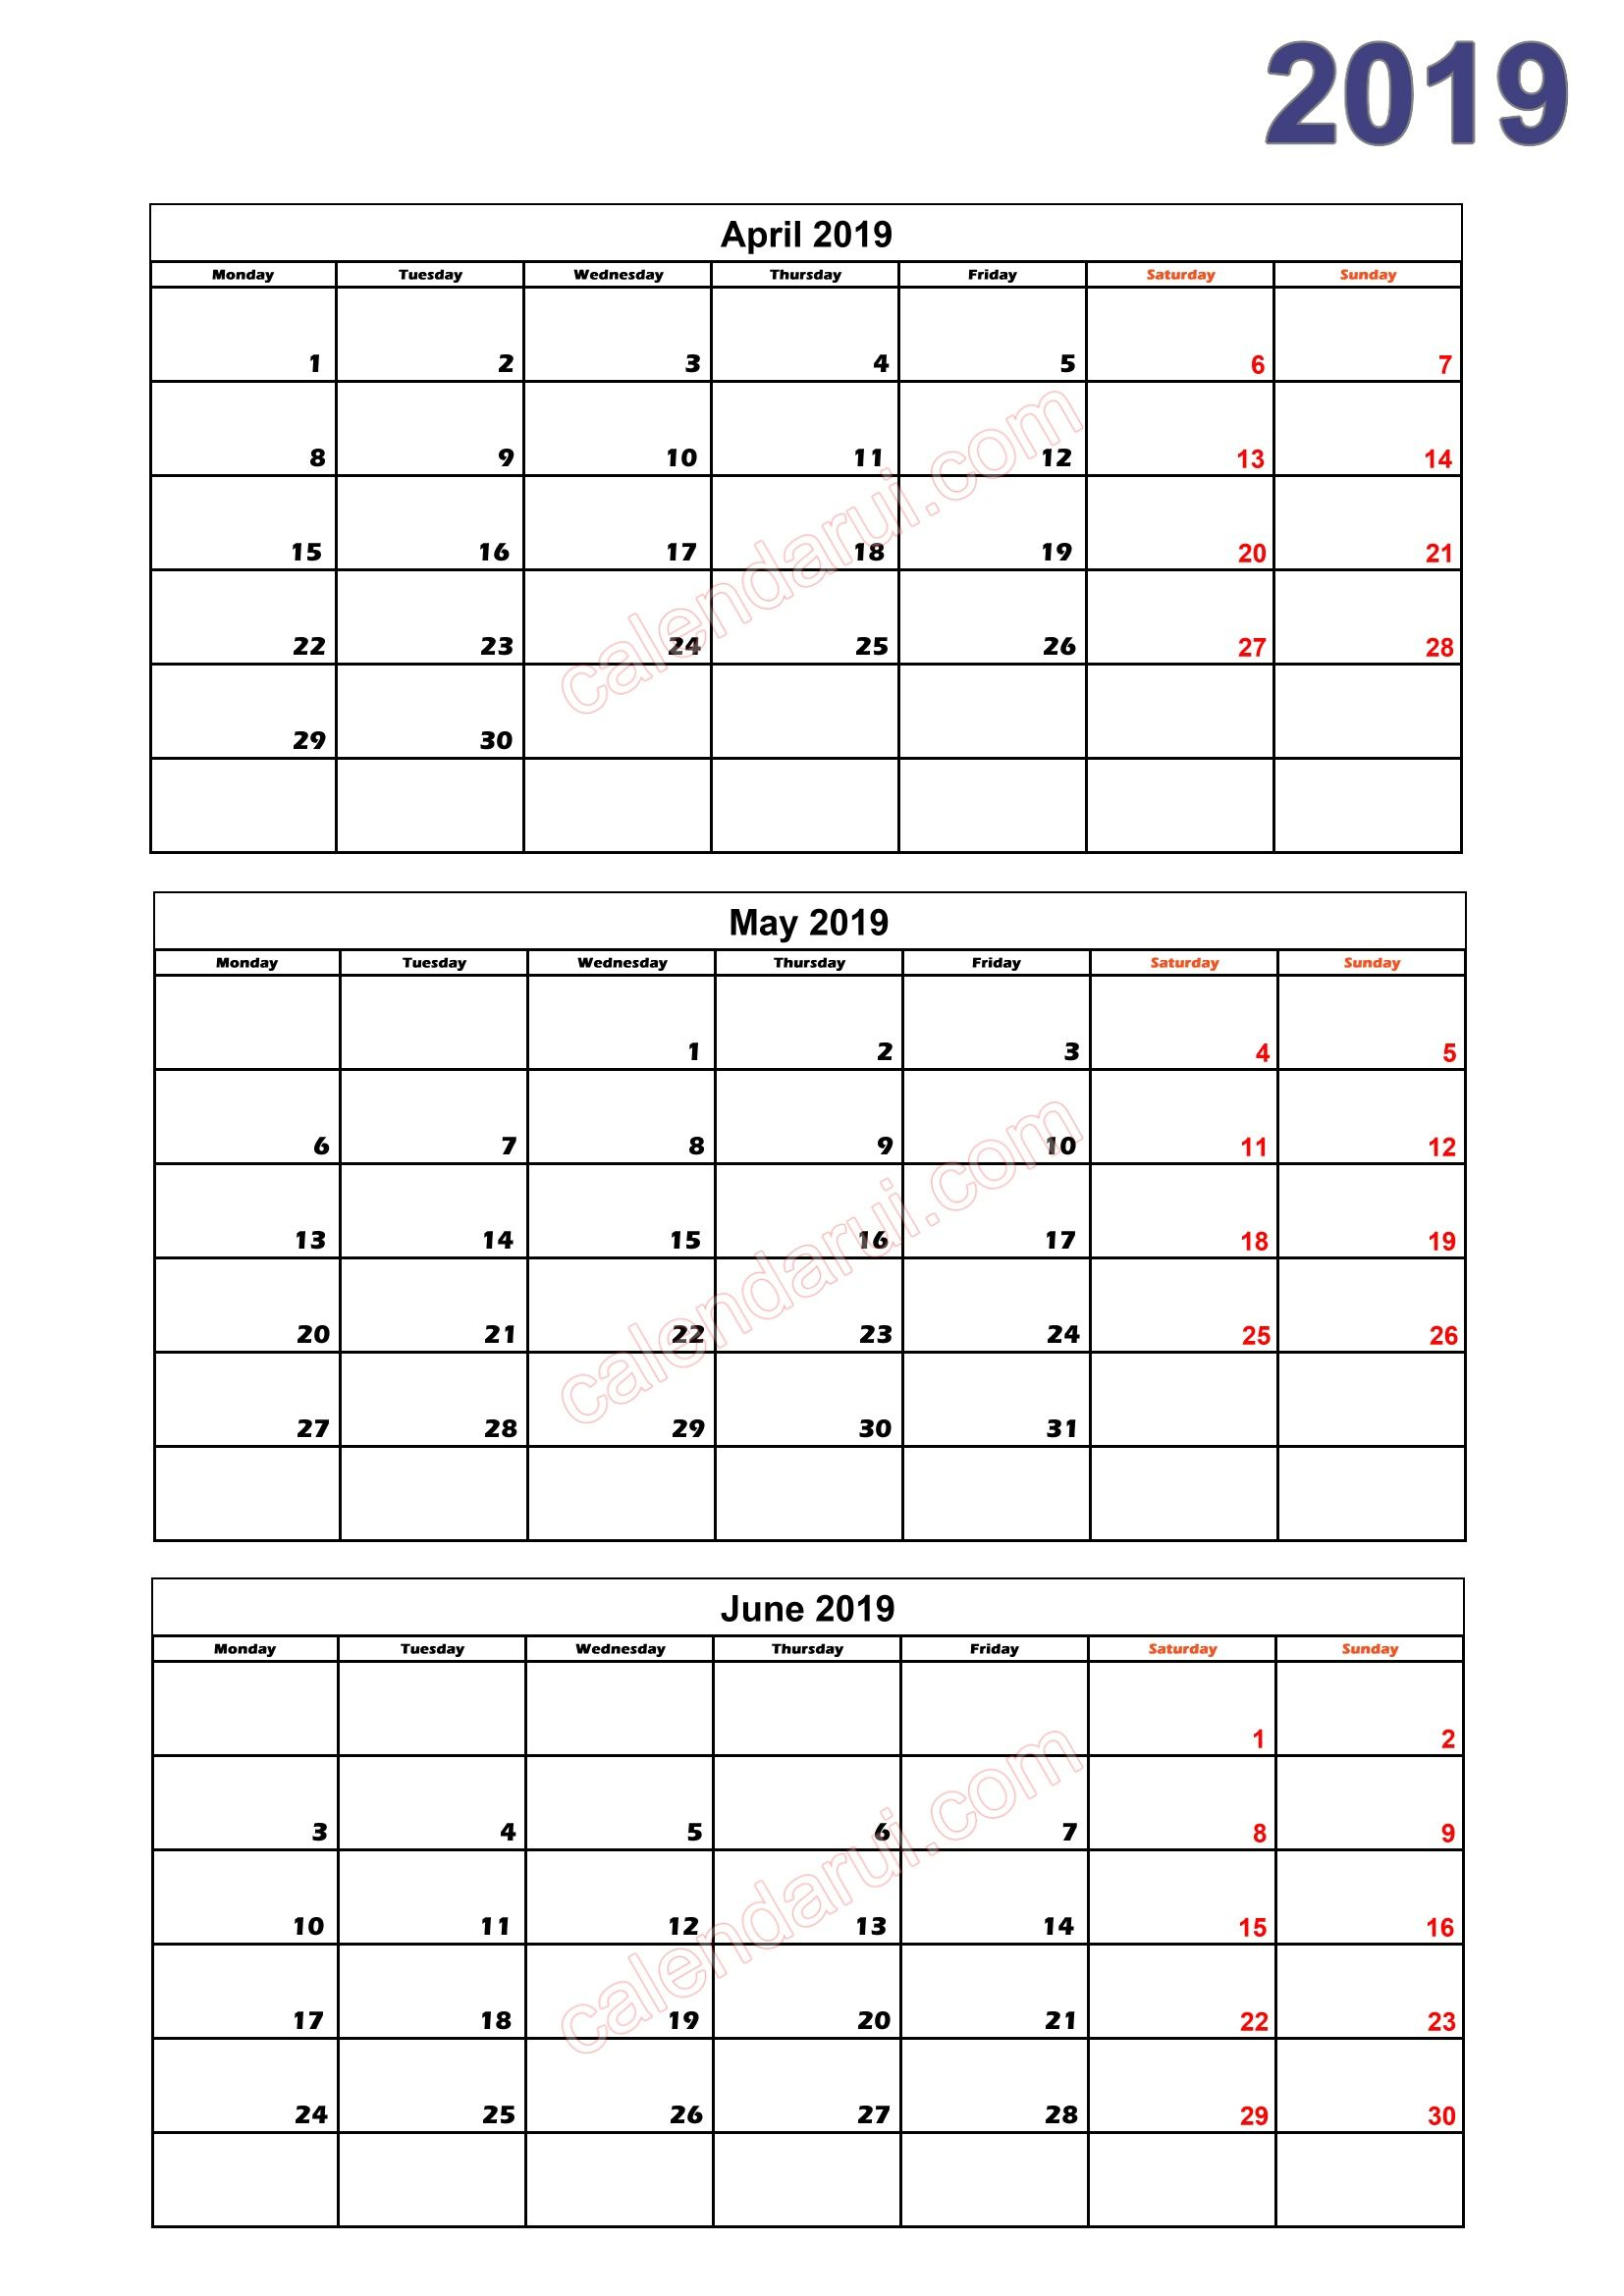 2 Quarter 2 Calendar 2019 Printable Download Free_2 | 2019